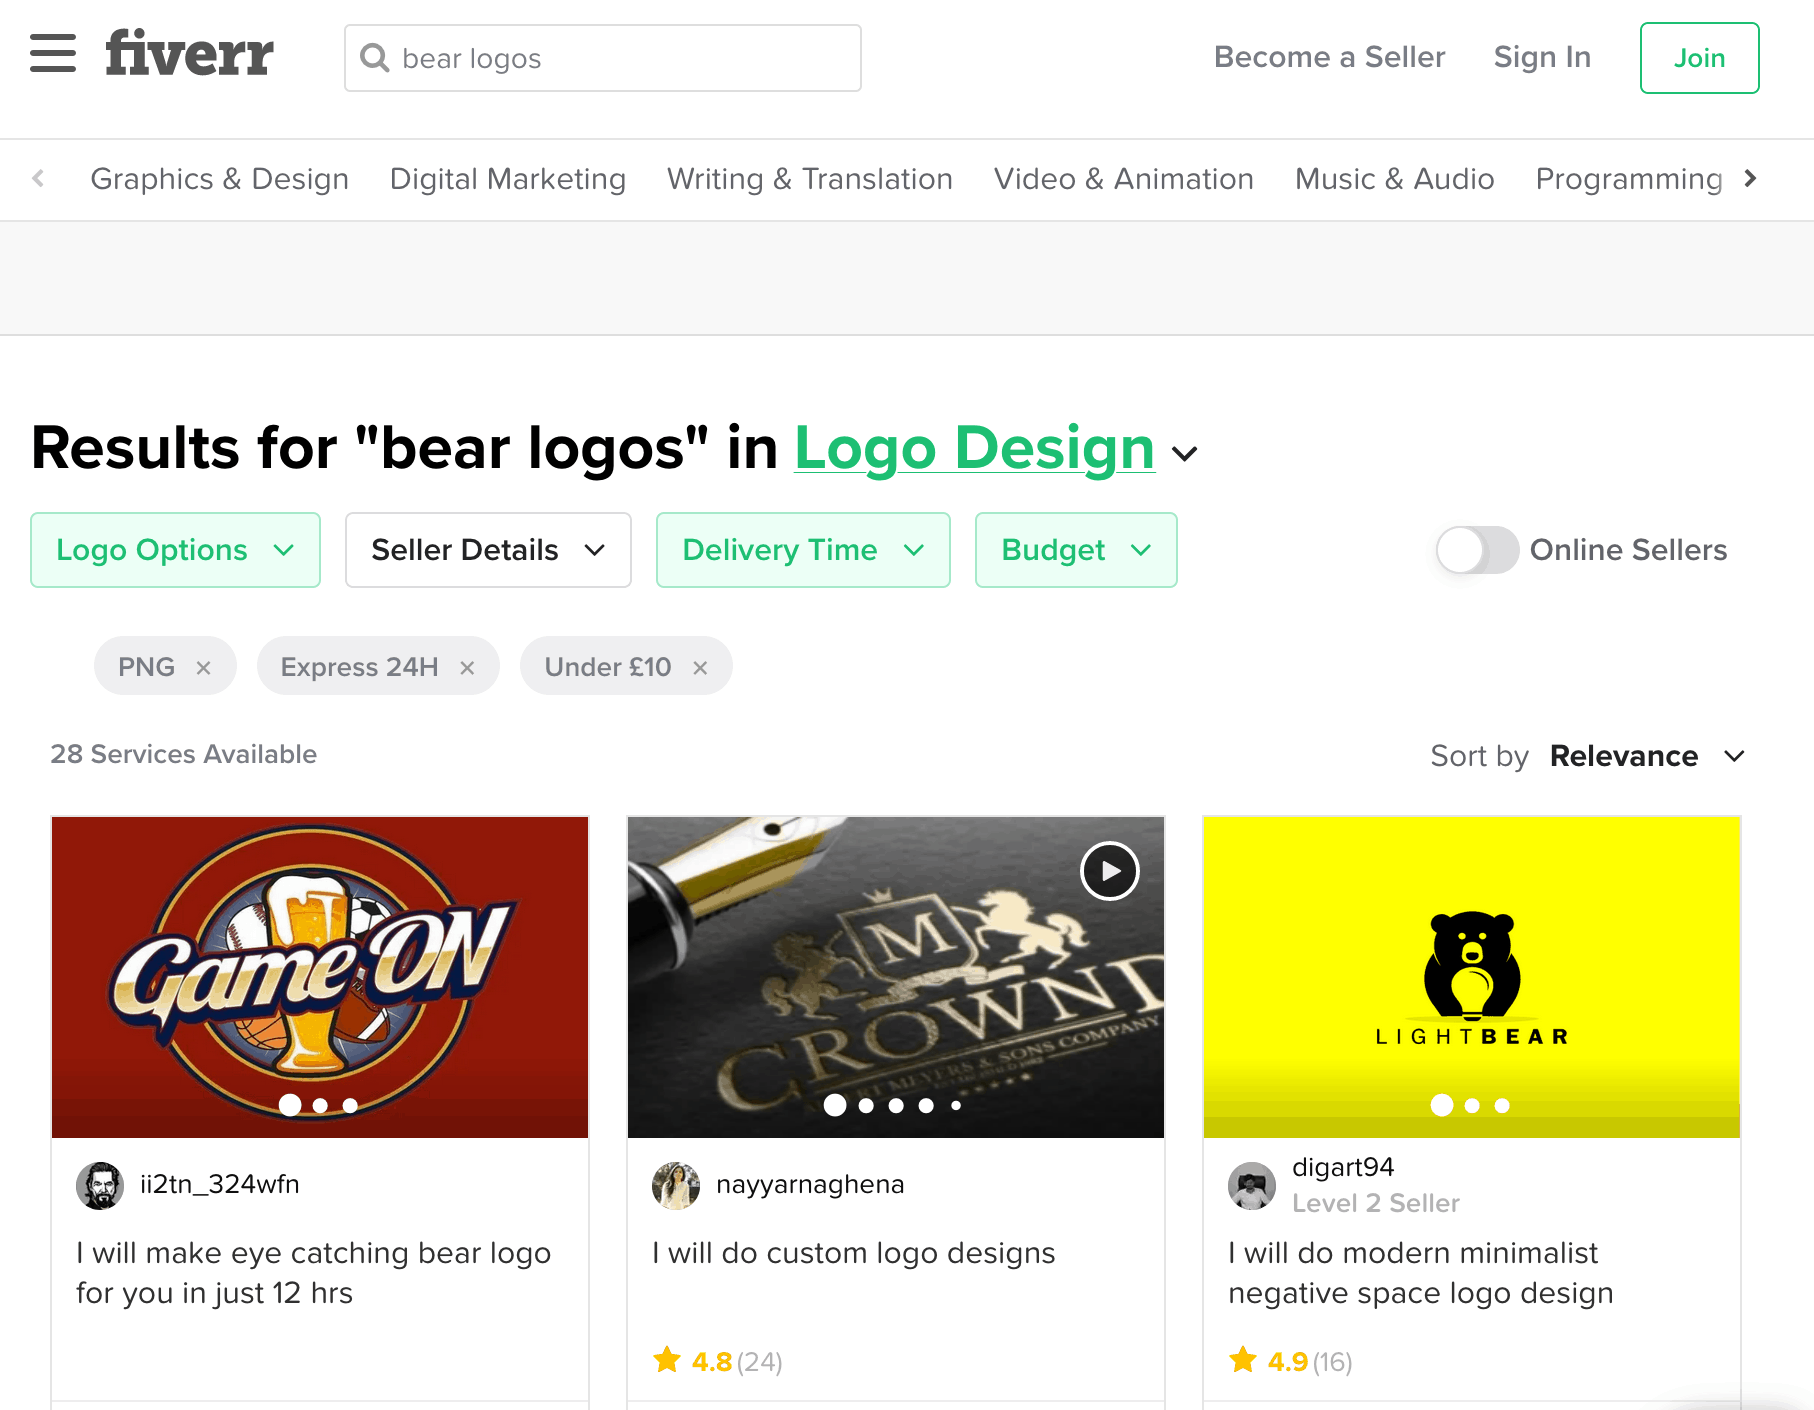 Fiverr screenshot - bear logo designers